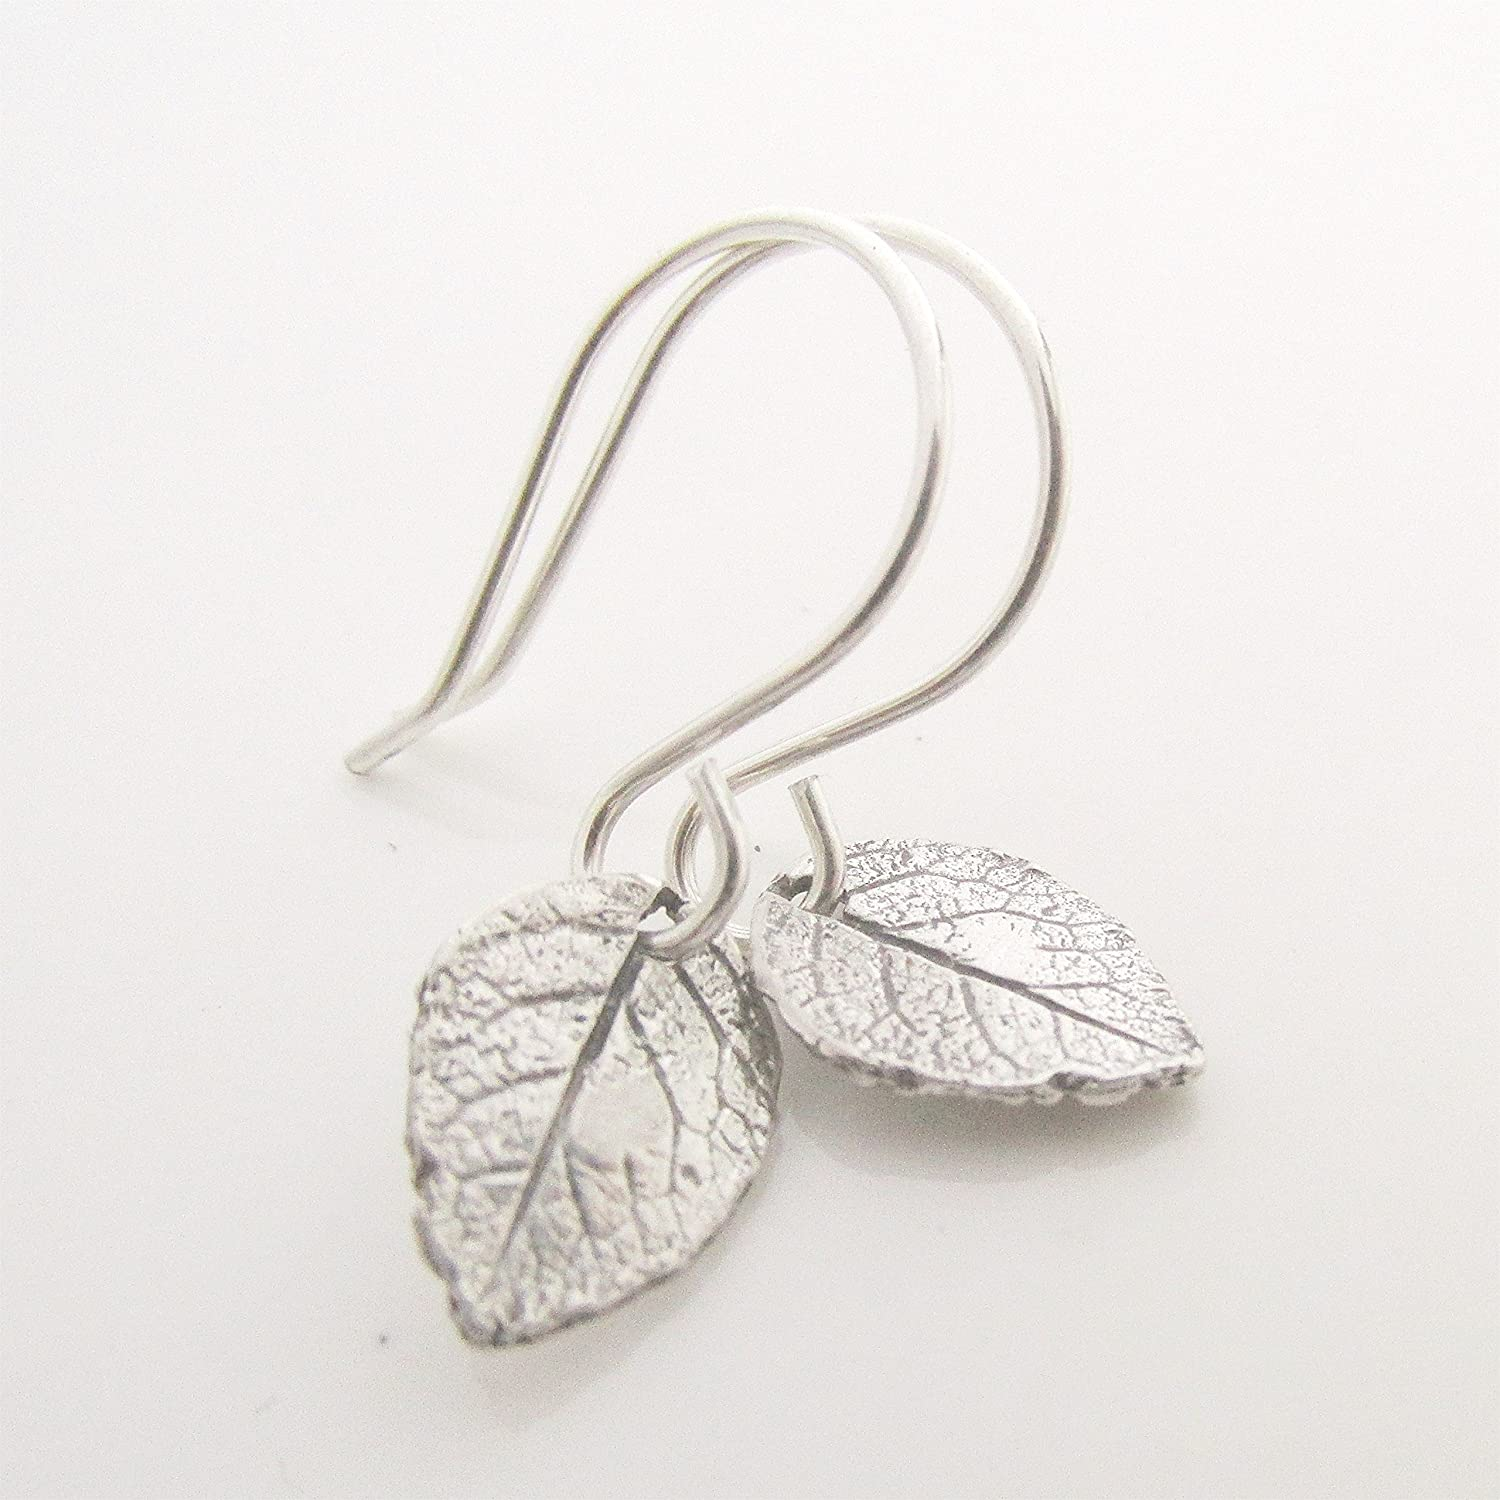 Silver Four Leaf Clover Heart Earrings Mini Leaf Earrings Unique Gift for her Leaf Jewelry Sterling Silver Earwire Nature Inspired **